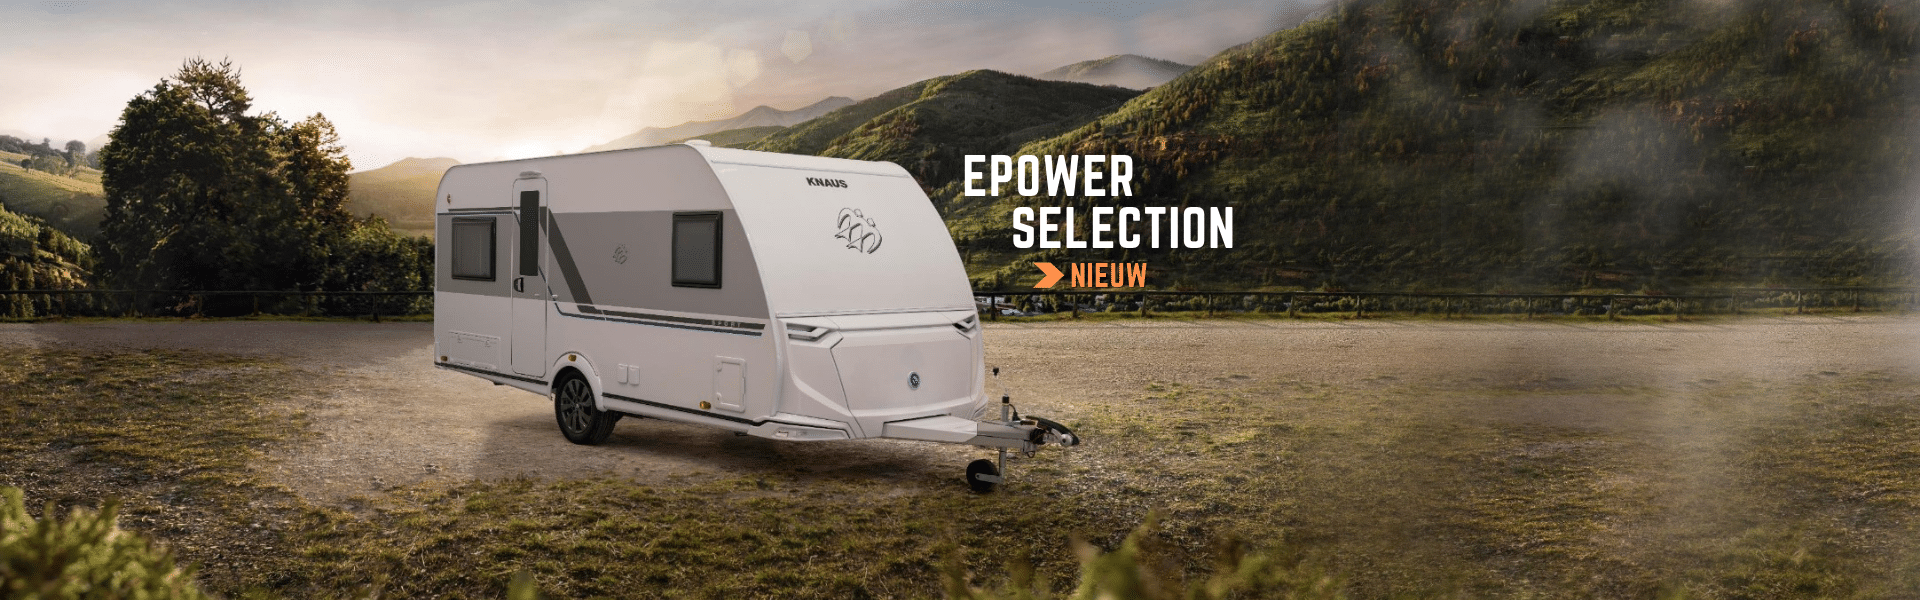 Epower selection home